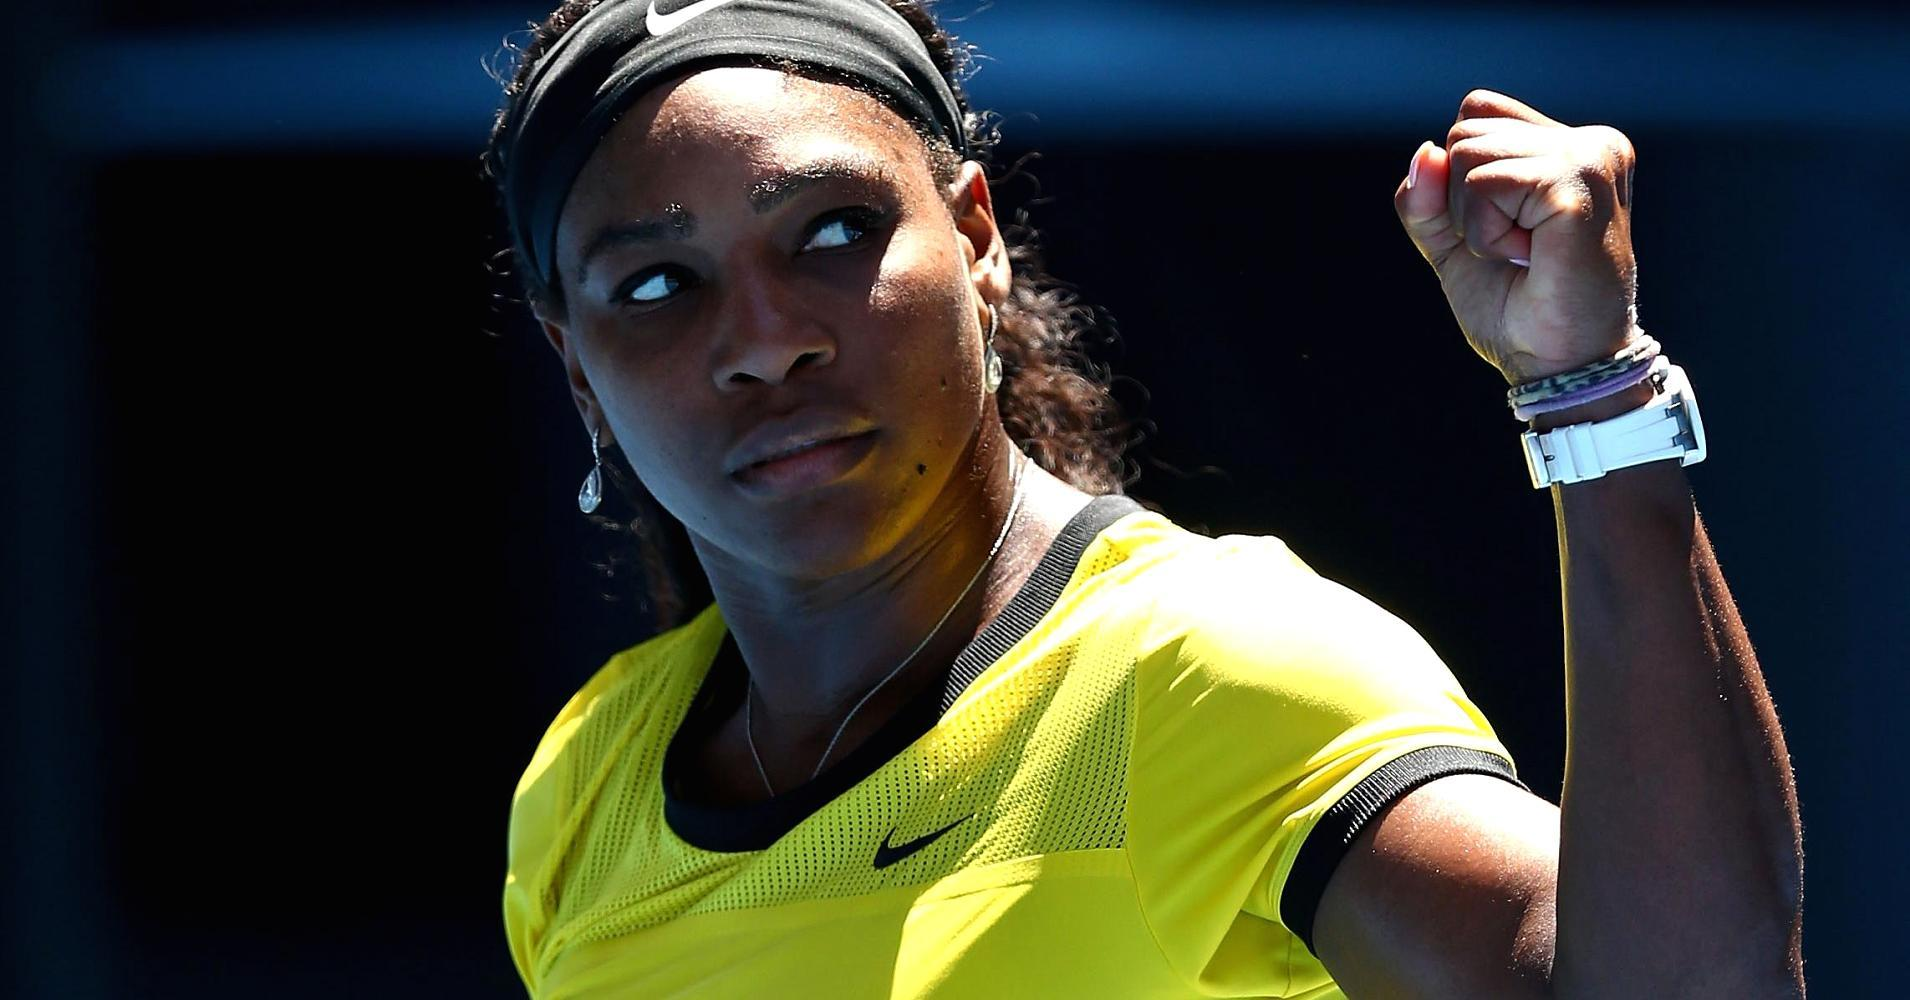 World's top tennis player, Serena Williams: I still haven't made it